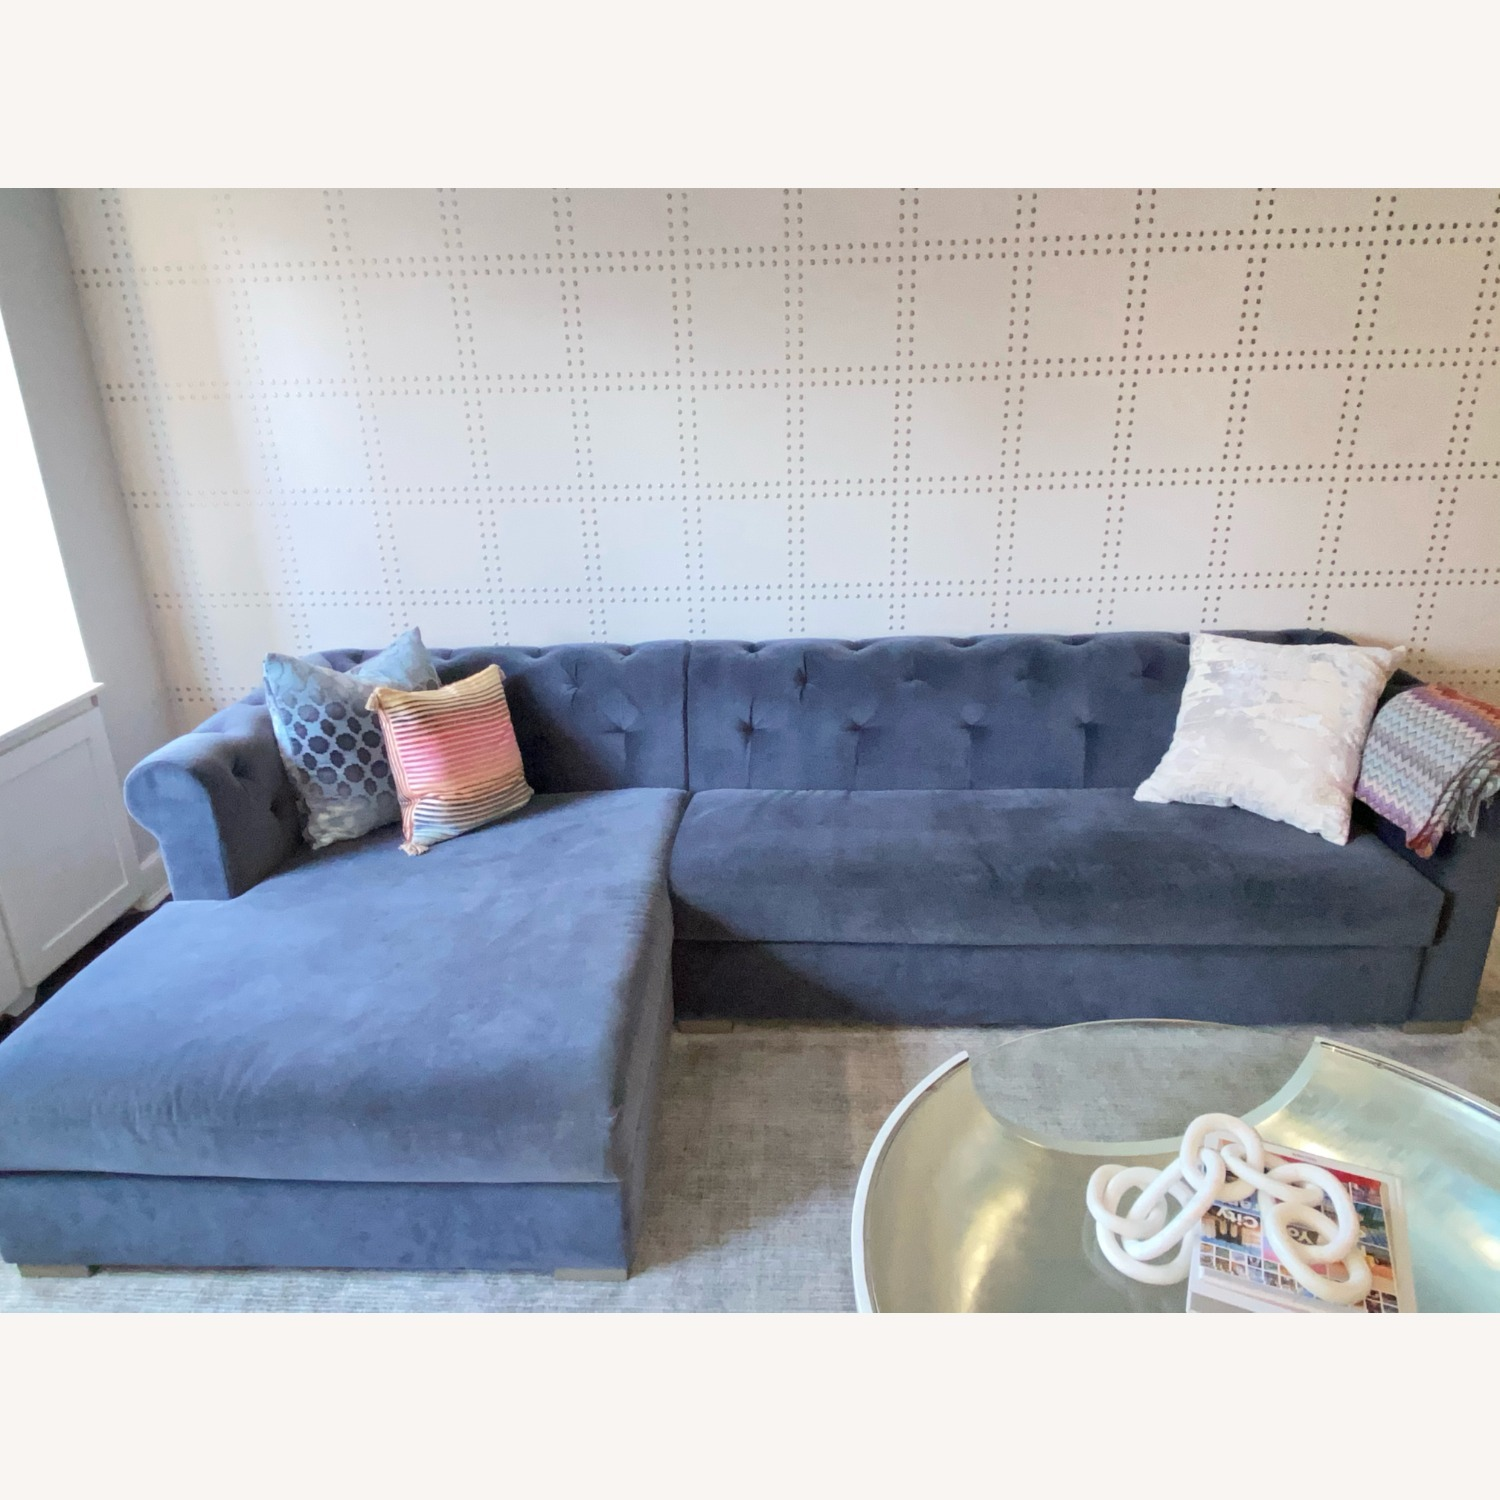 Restoration Hardware Sectional Couch - image-3